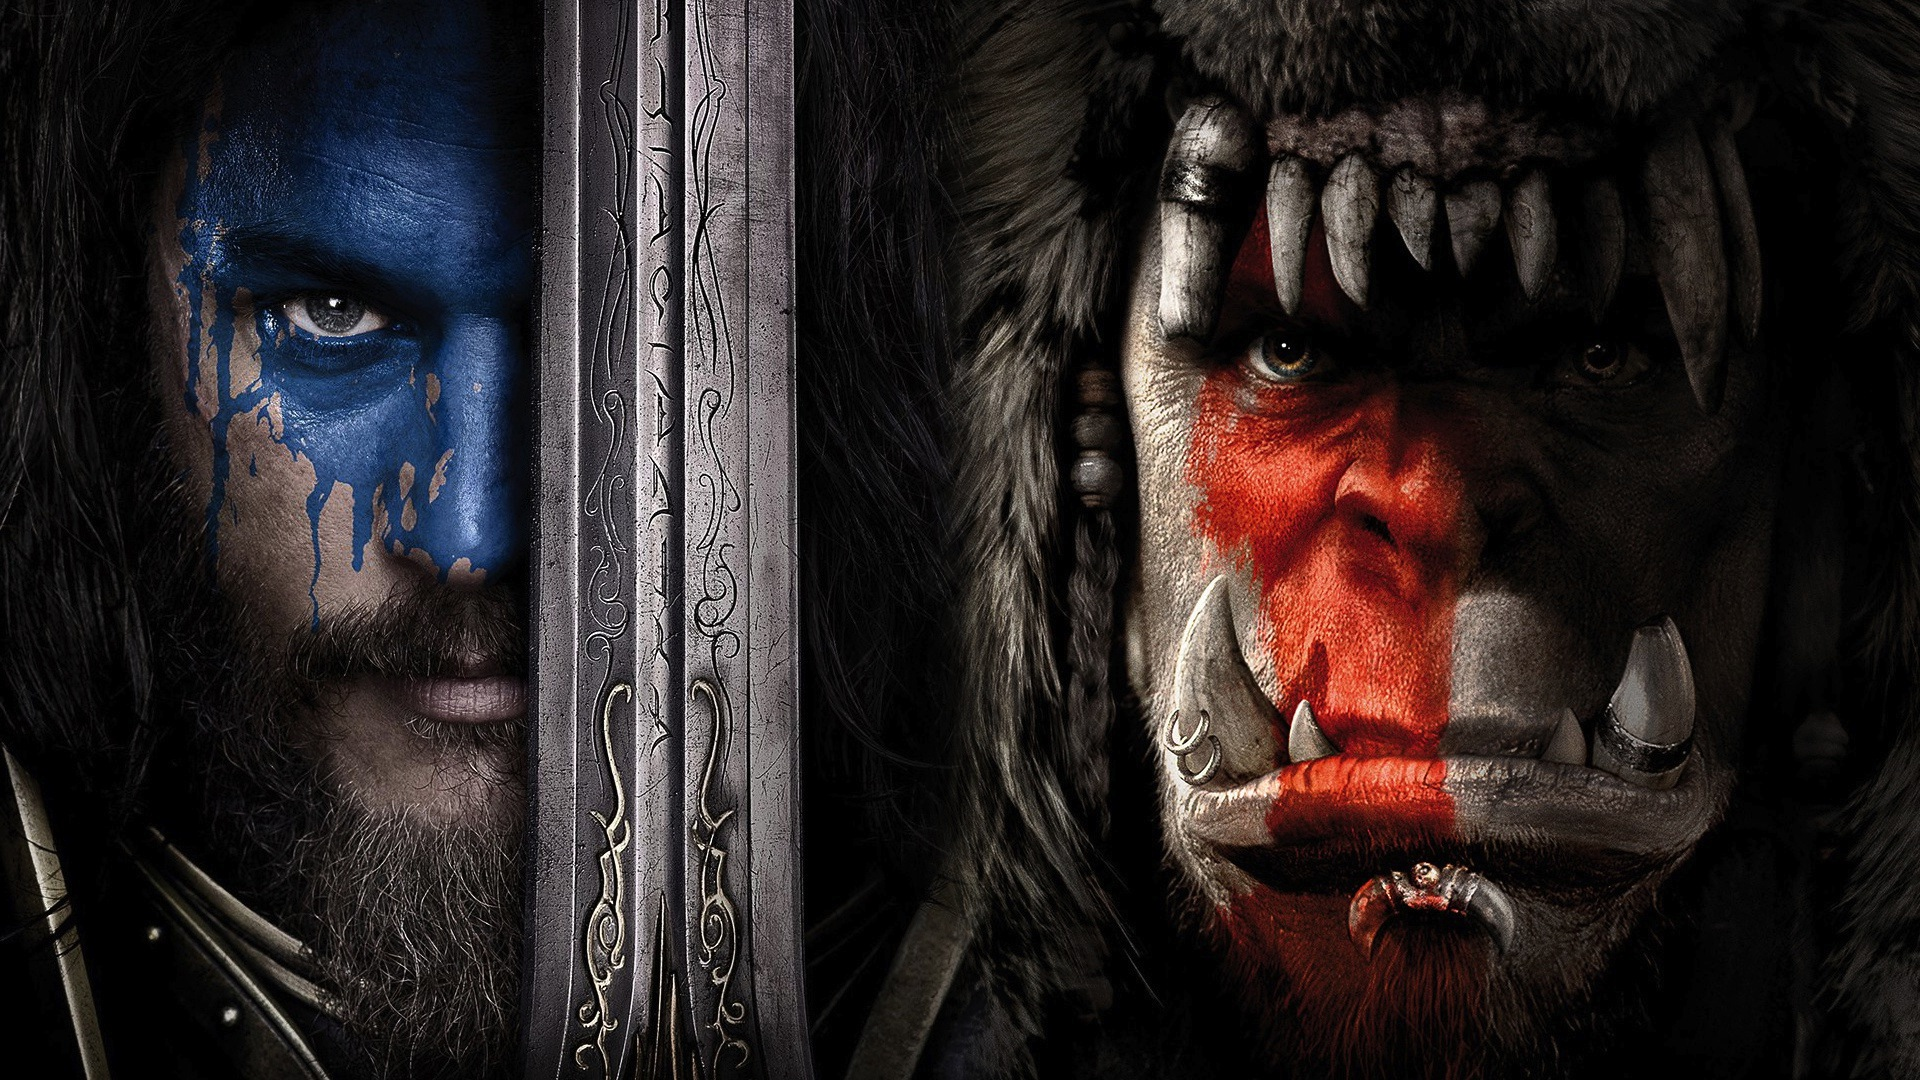 warcraft movie, hd movies, 4k wallpapers, images, backgrounds